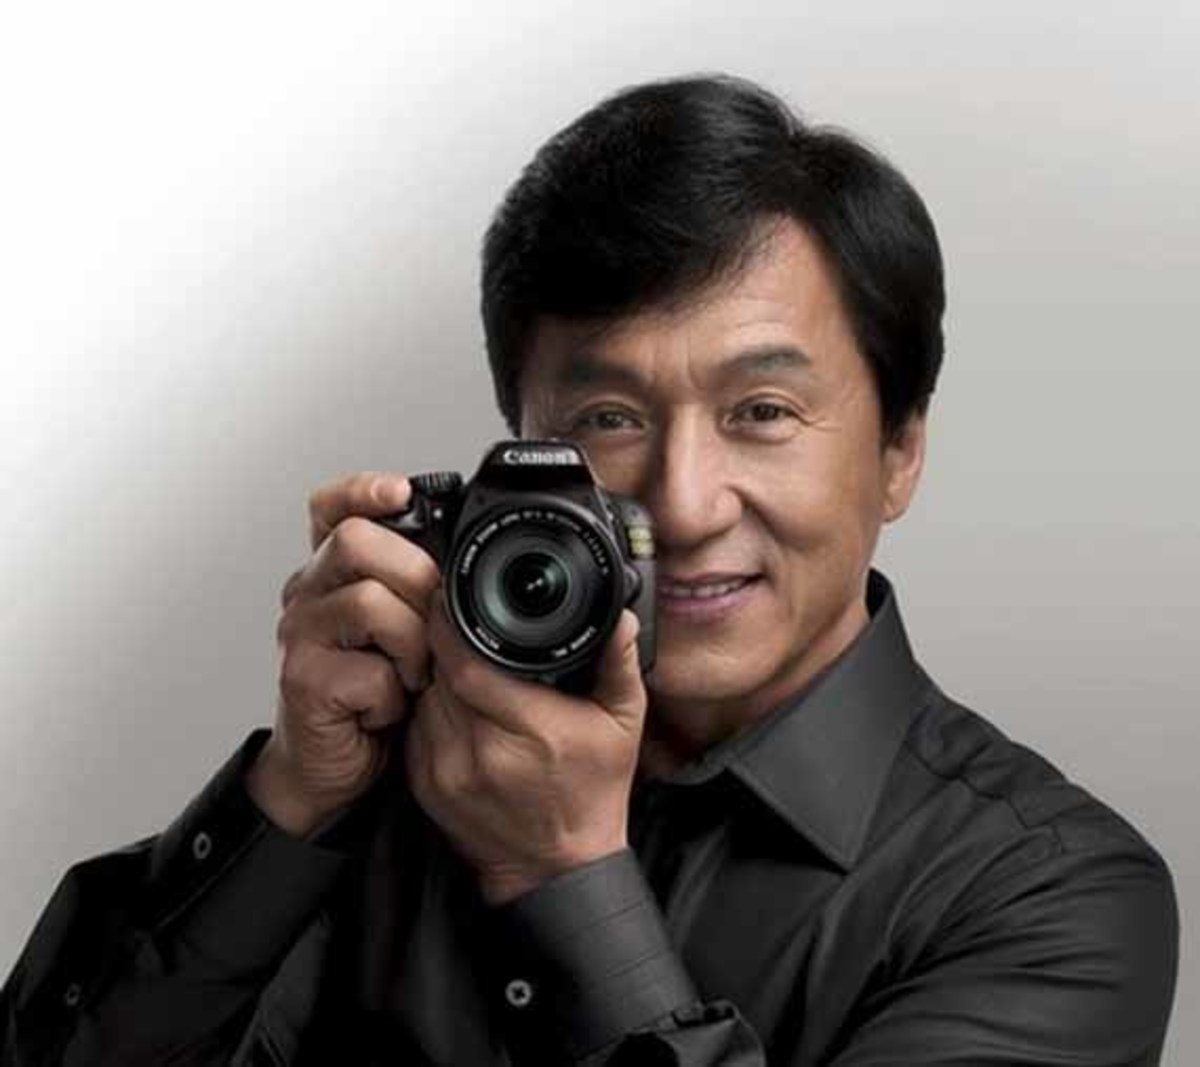 jackie-chan-canon-8